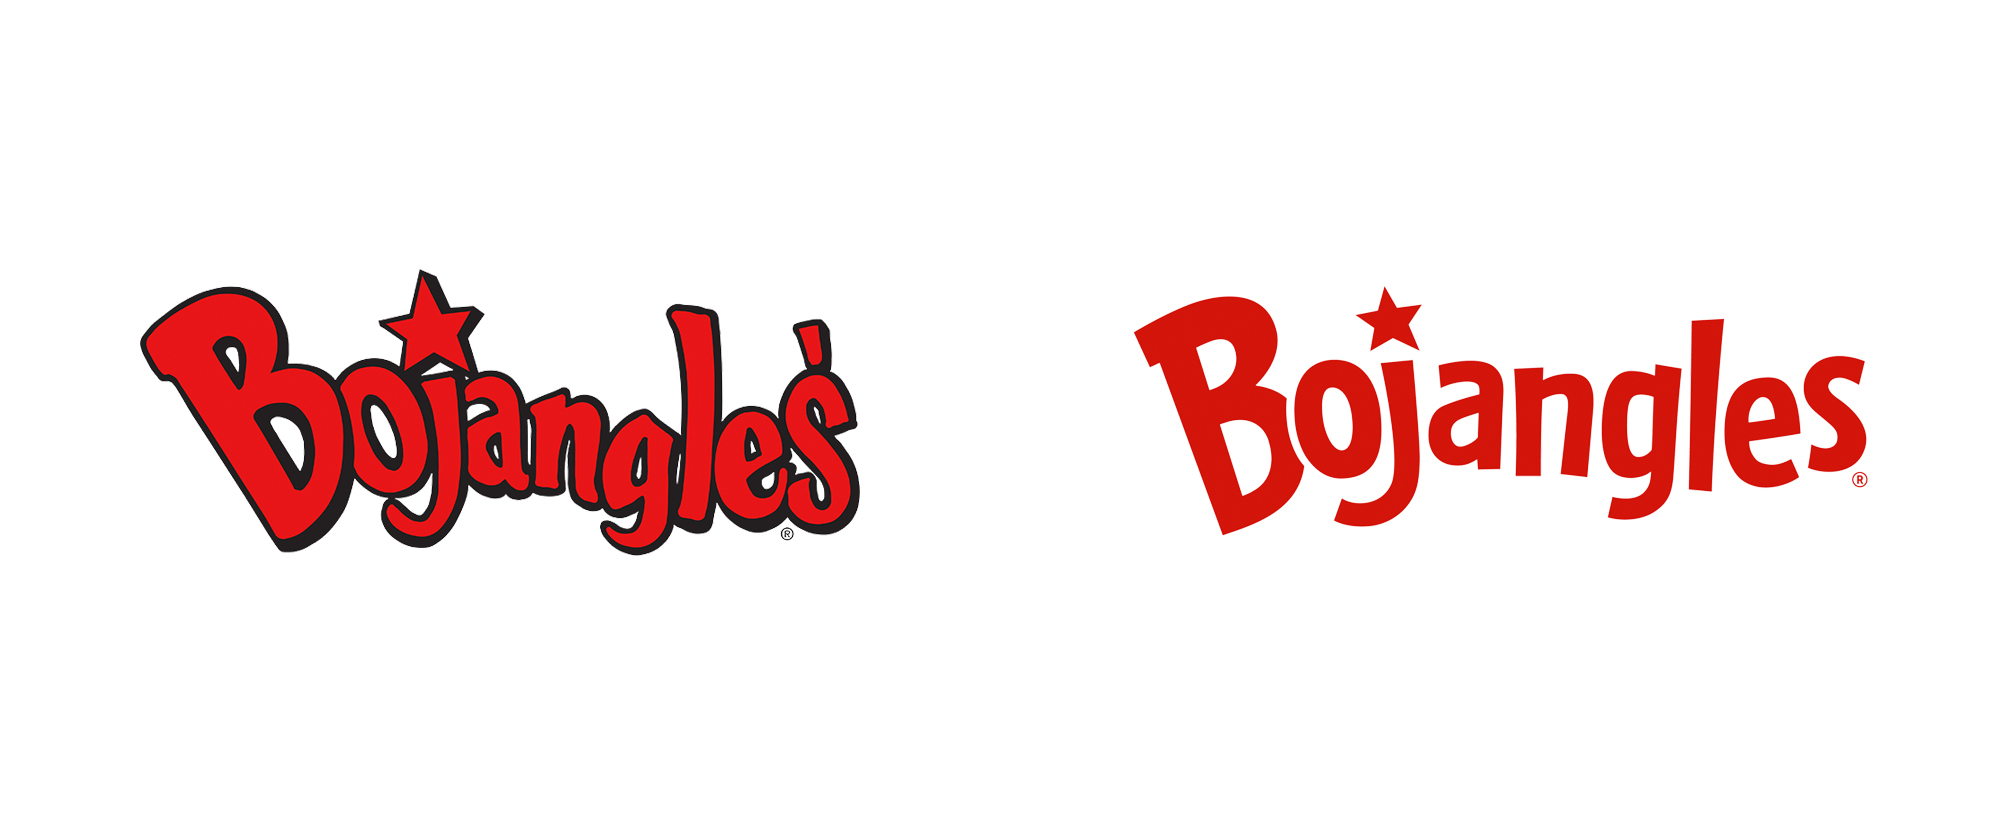 New Logo for Bojangles'